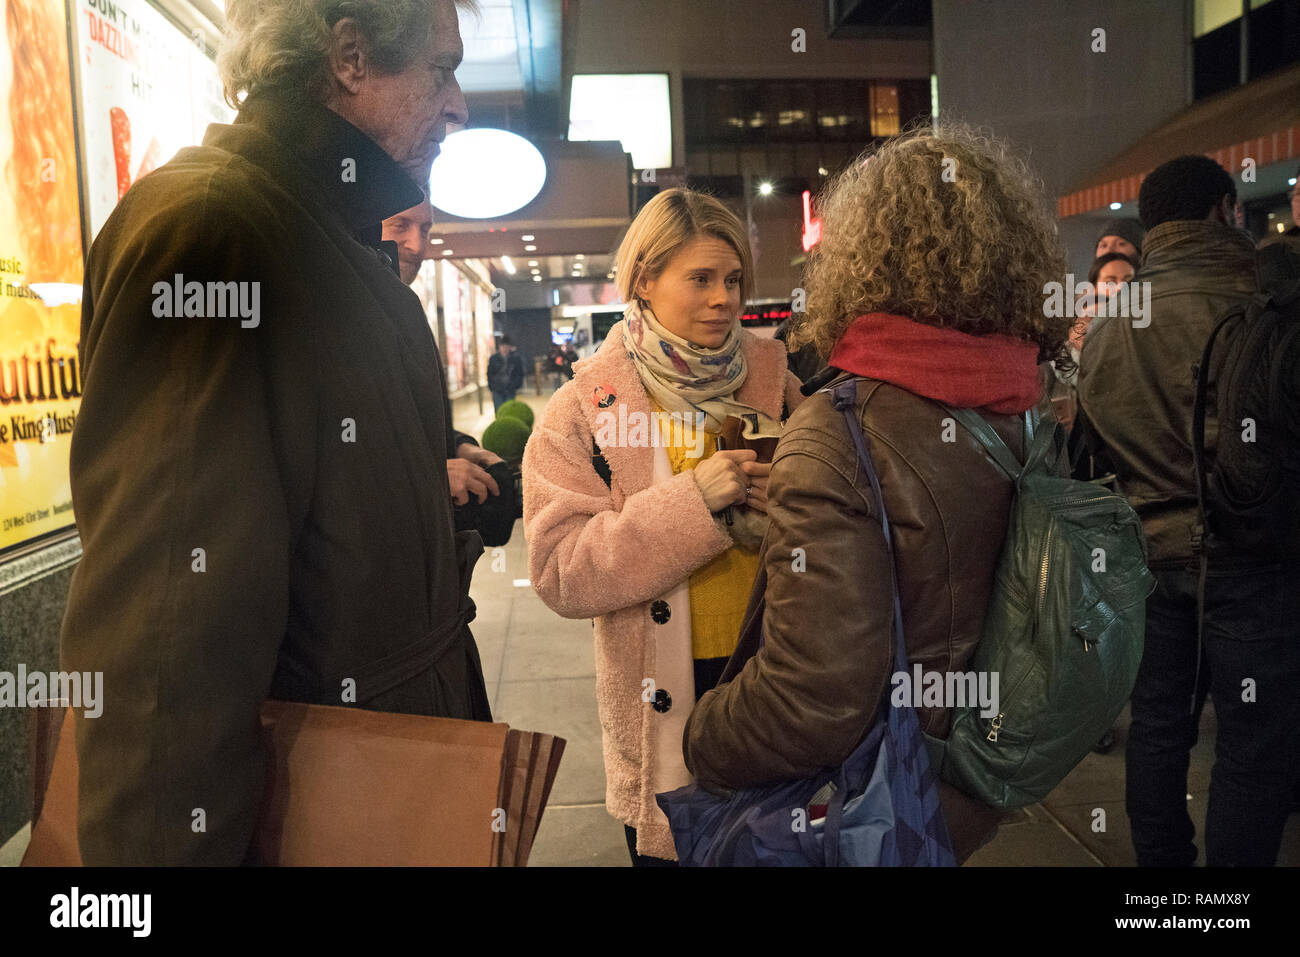 "New York, NY, 3 January 2019 - Celia Keenan-Bolger, who plays Scout Finch in the Broadway production of ""To Kill a Mockingbird,"" with fans after the show. Aaron Sorkin's adaption of Harper Lee's novel shattered records in its second full week of performances, grossing $1.702 million. That makes it the highest single-week grossing American play in Broadway history. Photo: Credit: Terese Loeb Kreuzer/Alamy Live News - Stock Image"